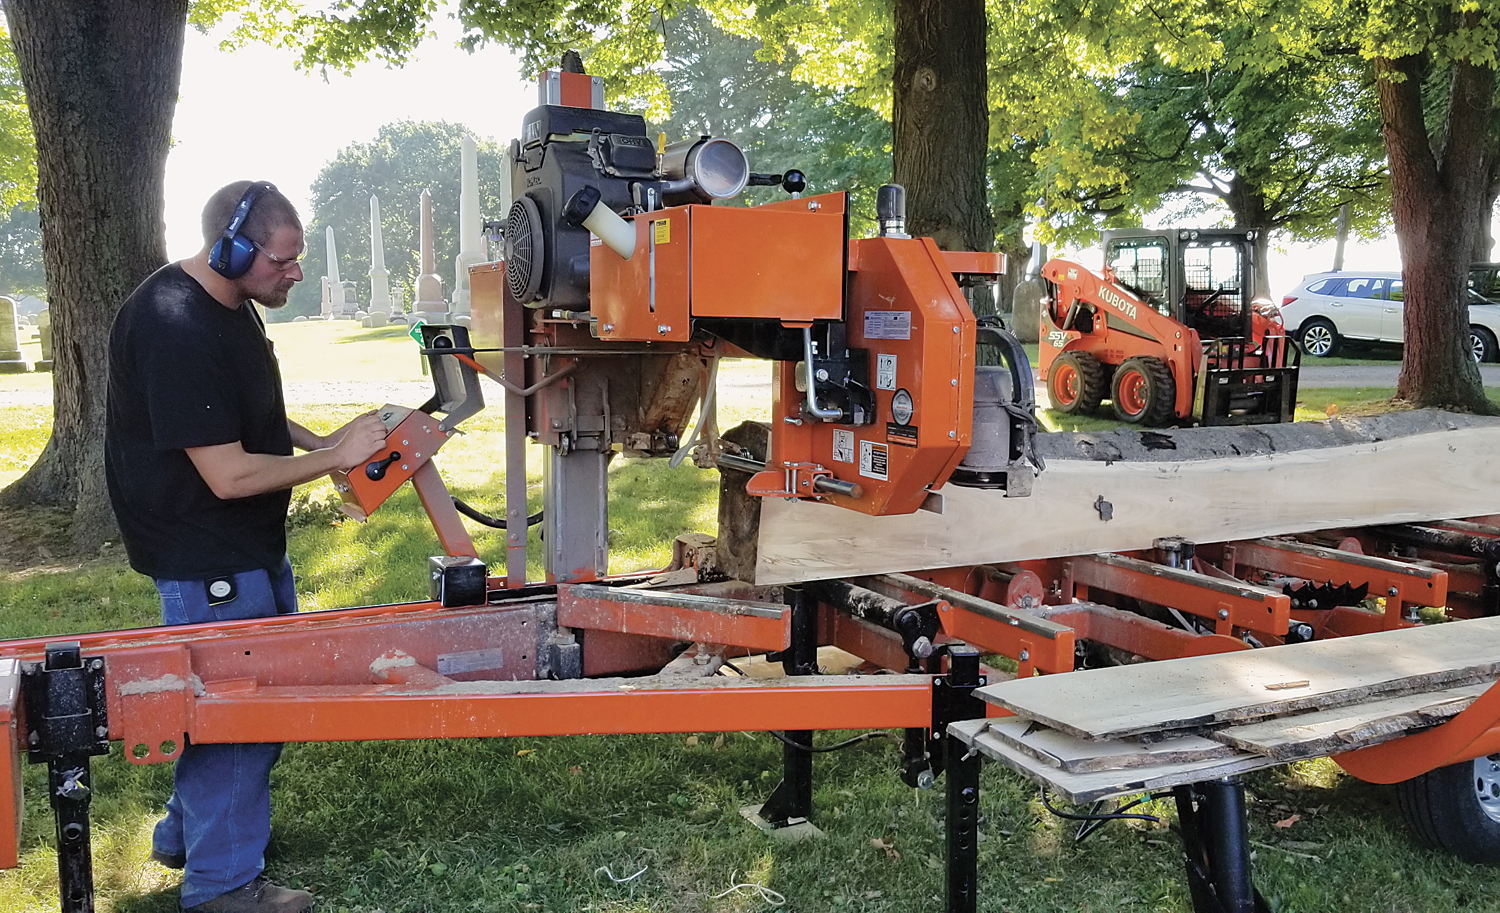 "At the 2018 Harvest Fest, many kinds of machinery were demonstrated. Here, Richard Jurzysta operates the ""Woodmizer LT35"" full hydraulic saw that turns lumber into beams, mantels, and other things. The horizontal band saw moves along a stationary log at a specified thickness. Photo by Dianne Hickerson"